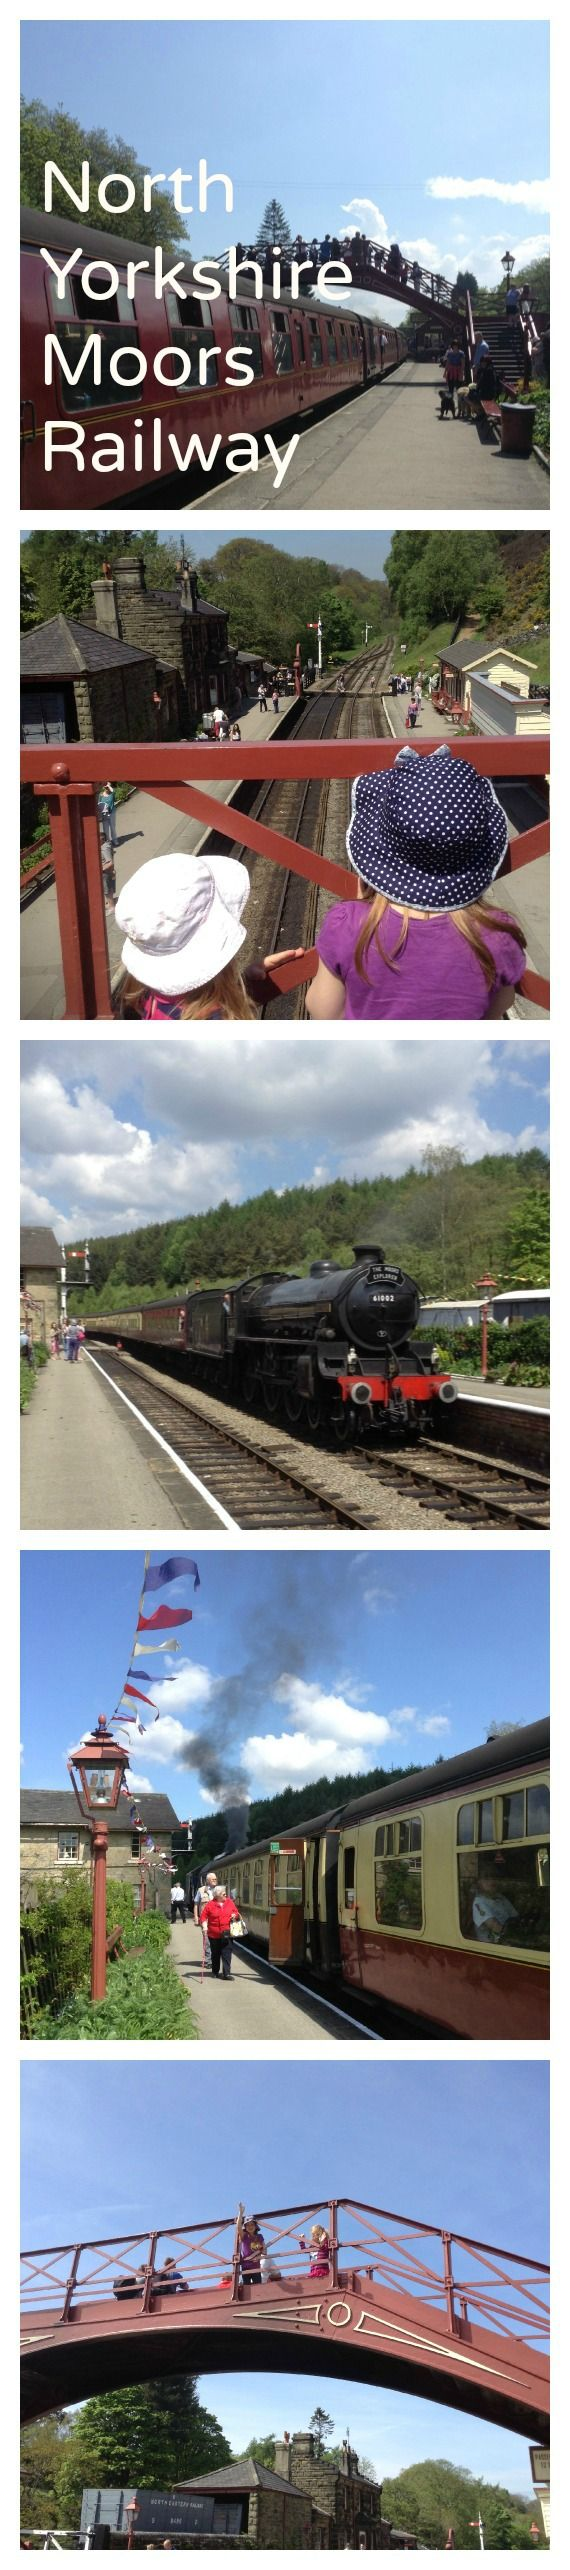 Our review of the North Yorkshire Moors Railway